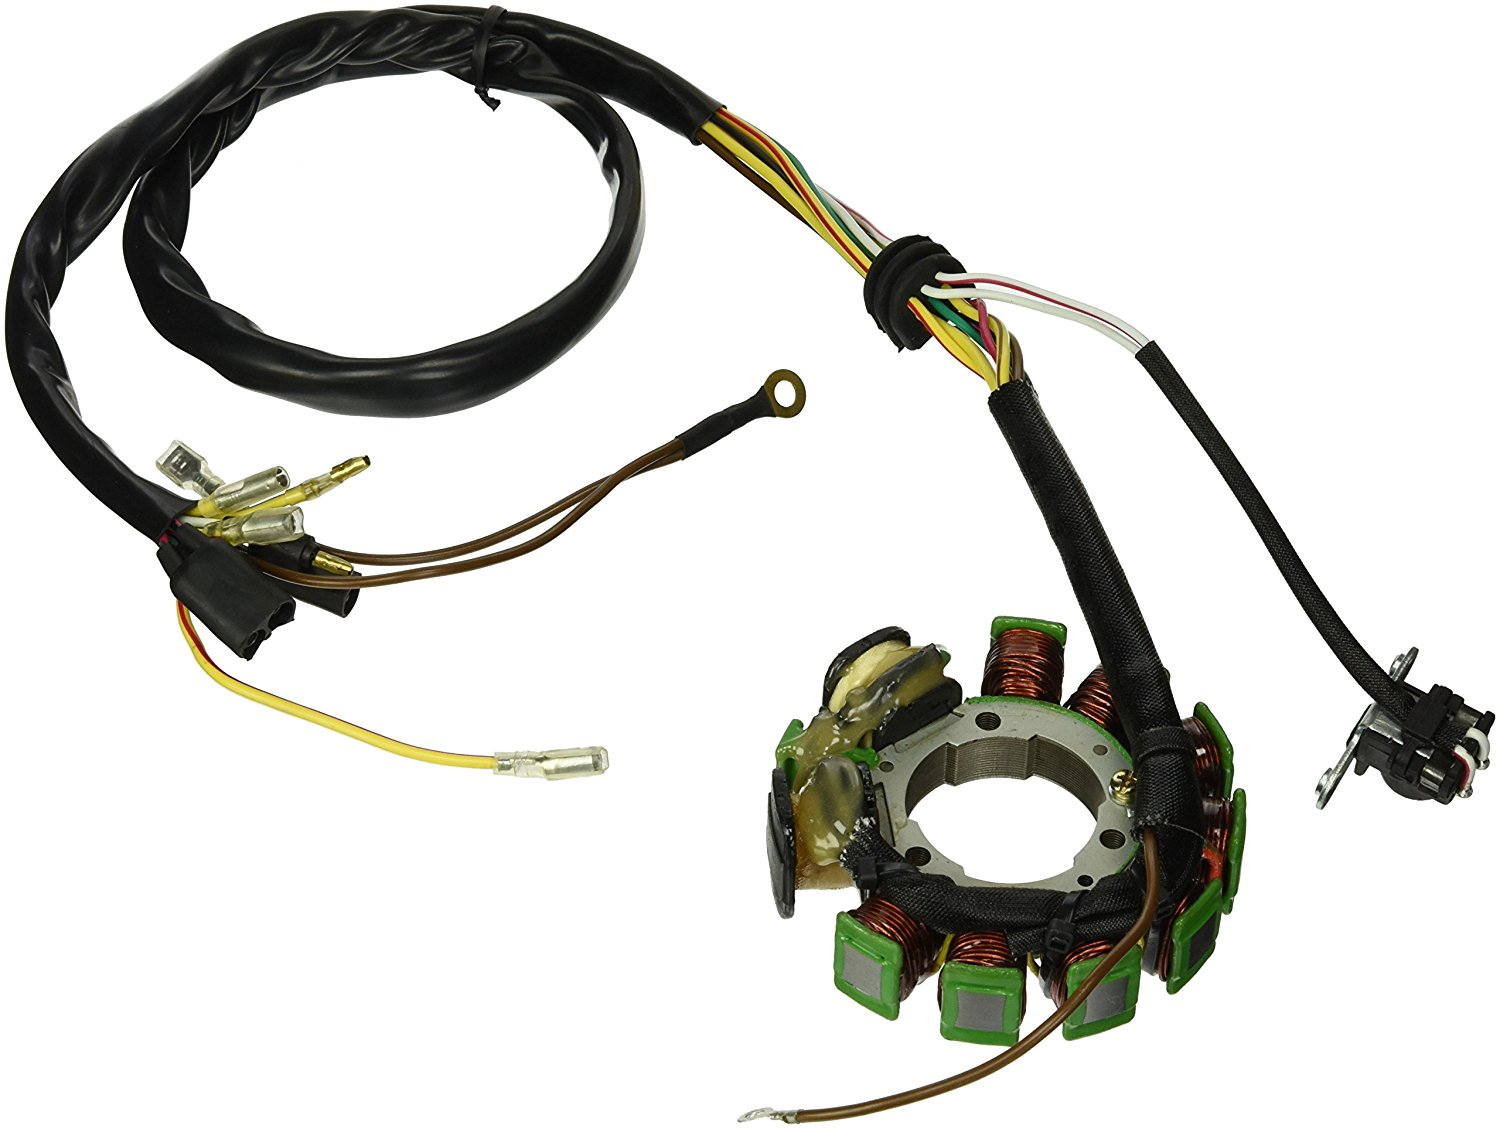 Cheap Mpp 335 400 Find Deals On Line At Alibabacom 1995 Polaris Sportsman Wiring Schematic Get Quotations Db Electrical Apo4001 Stator Coil For Magnum 425 1998 2001